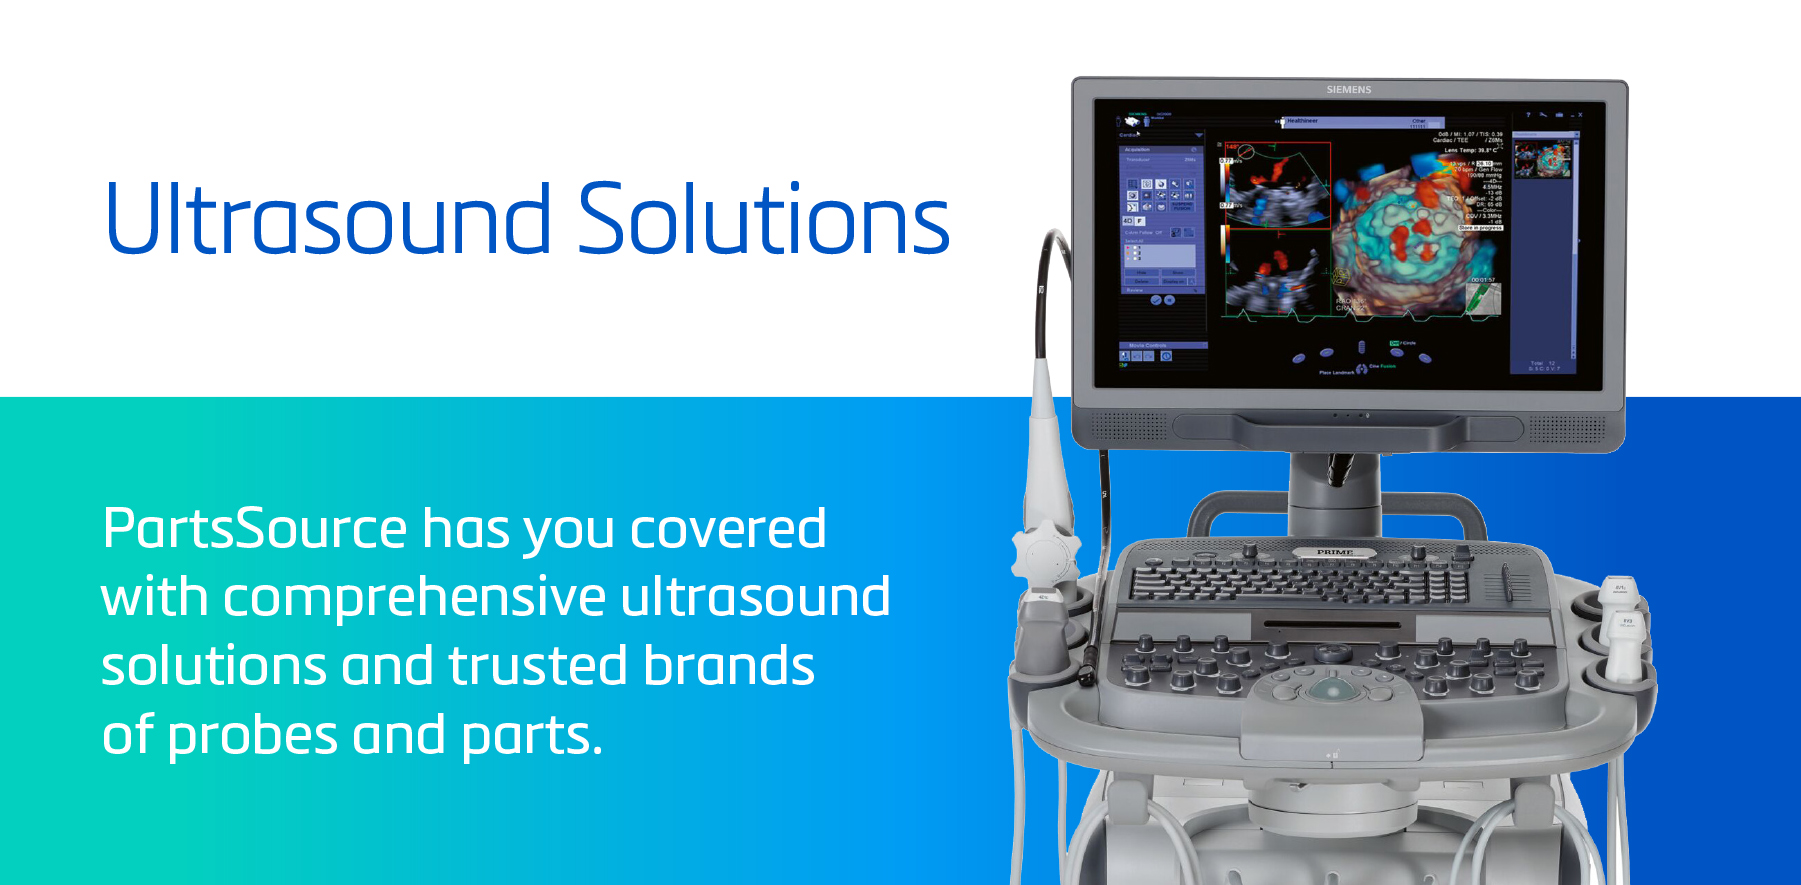 Ultrasound Solutions